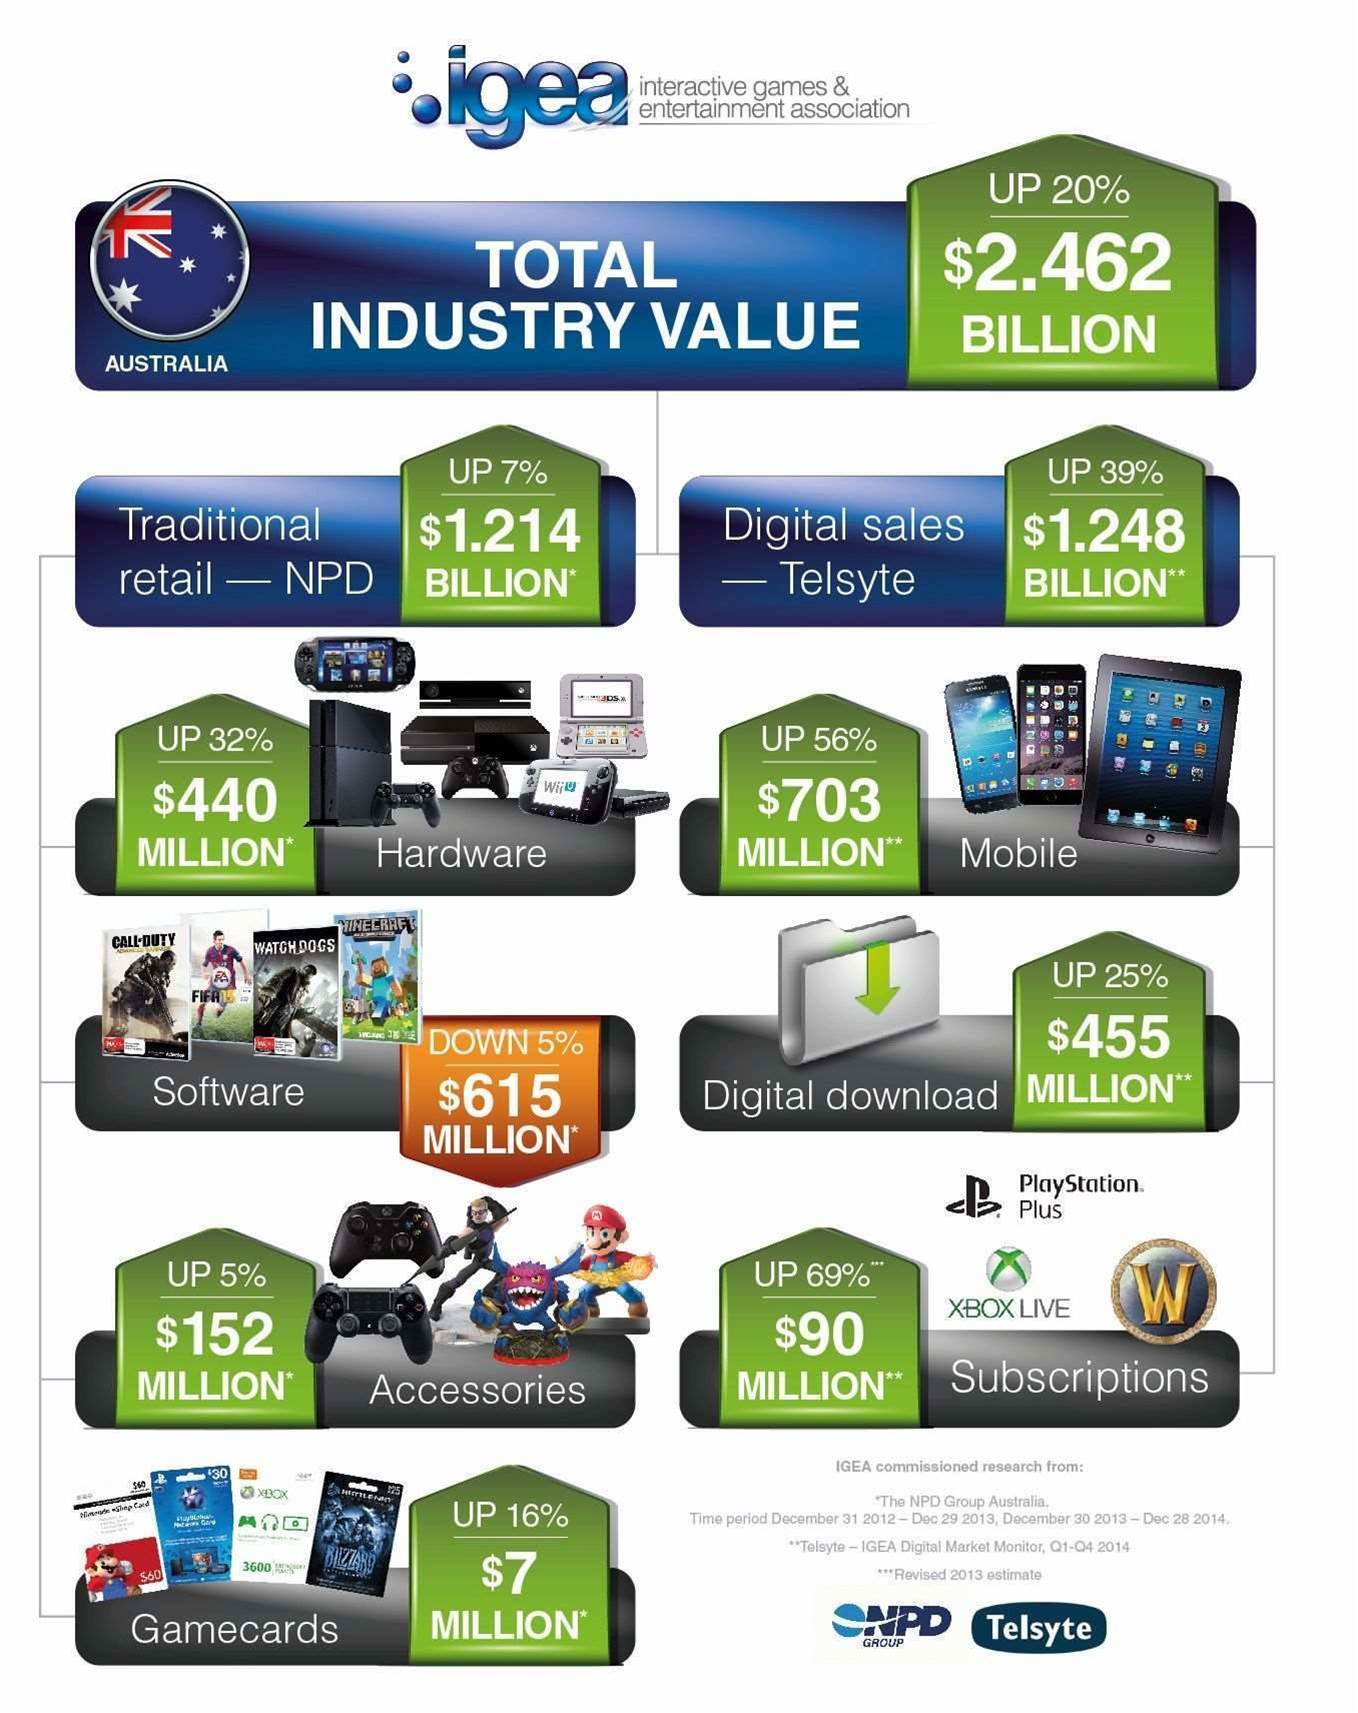 Australia's video game industry worth $2.46 billion in 2014